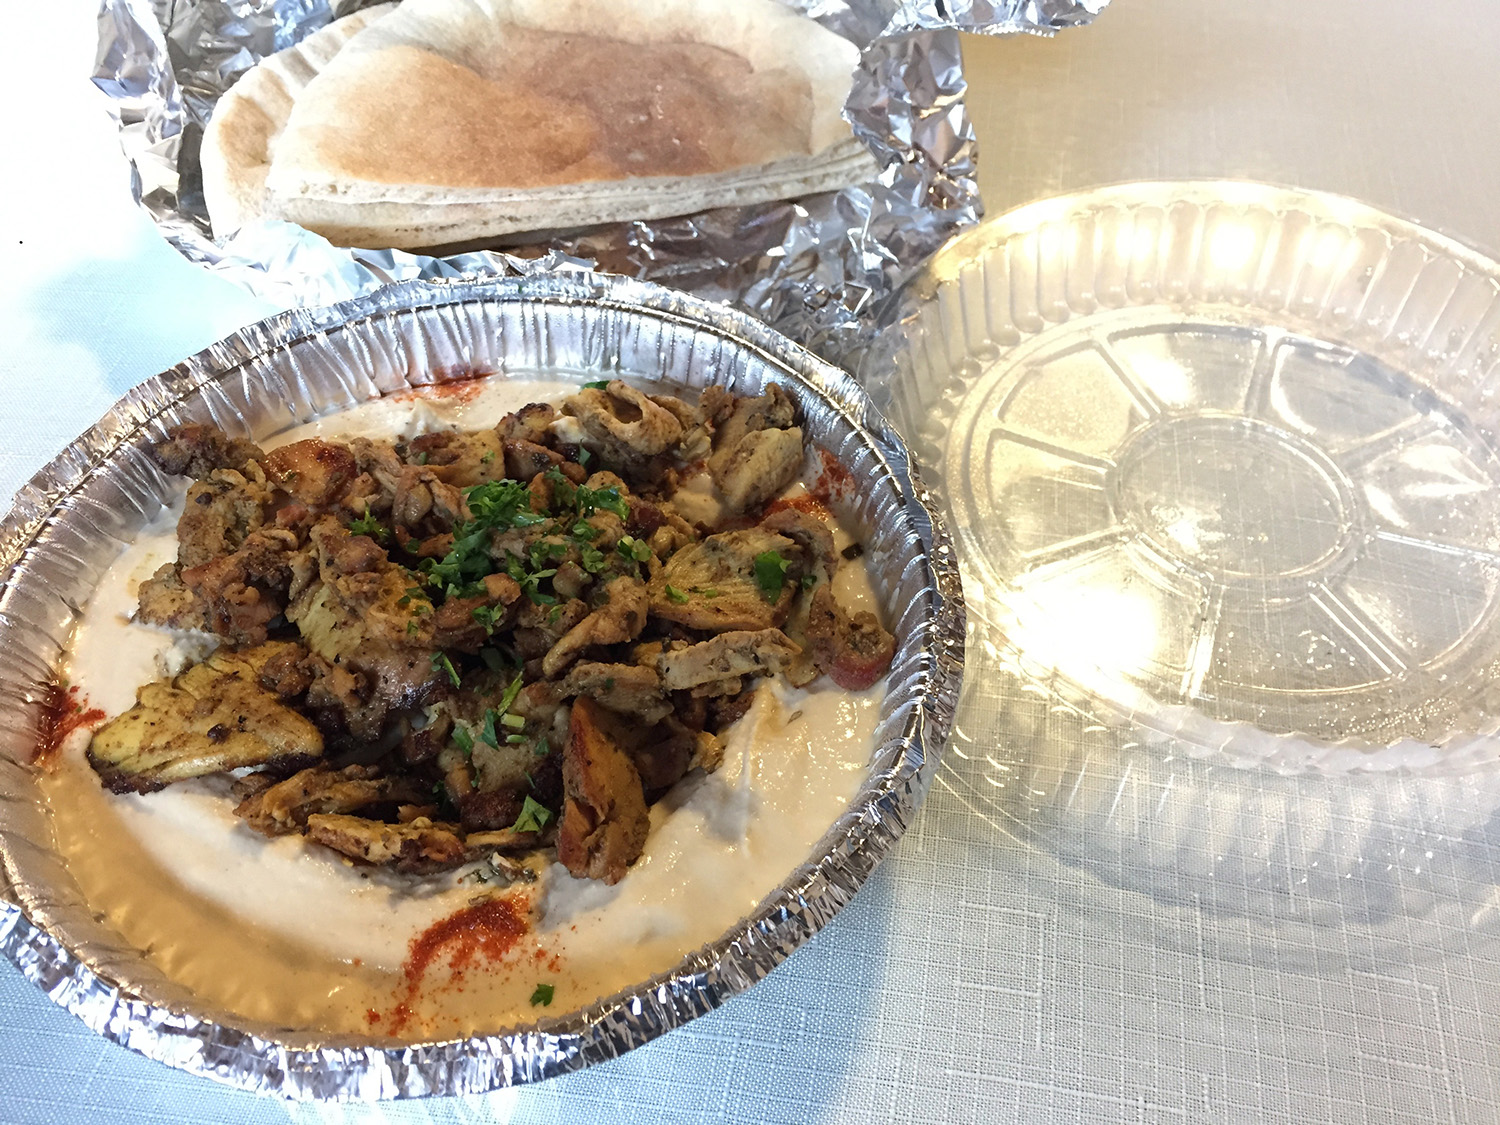 Hummus and Chicken Shawarma Plate